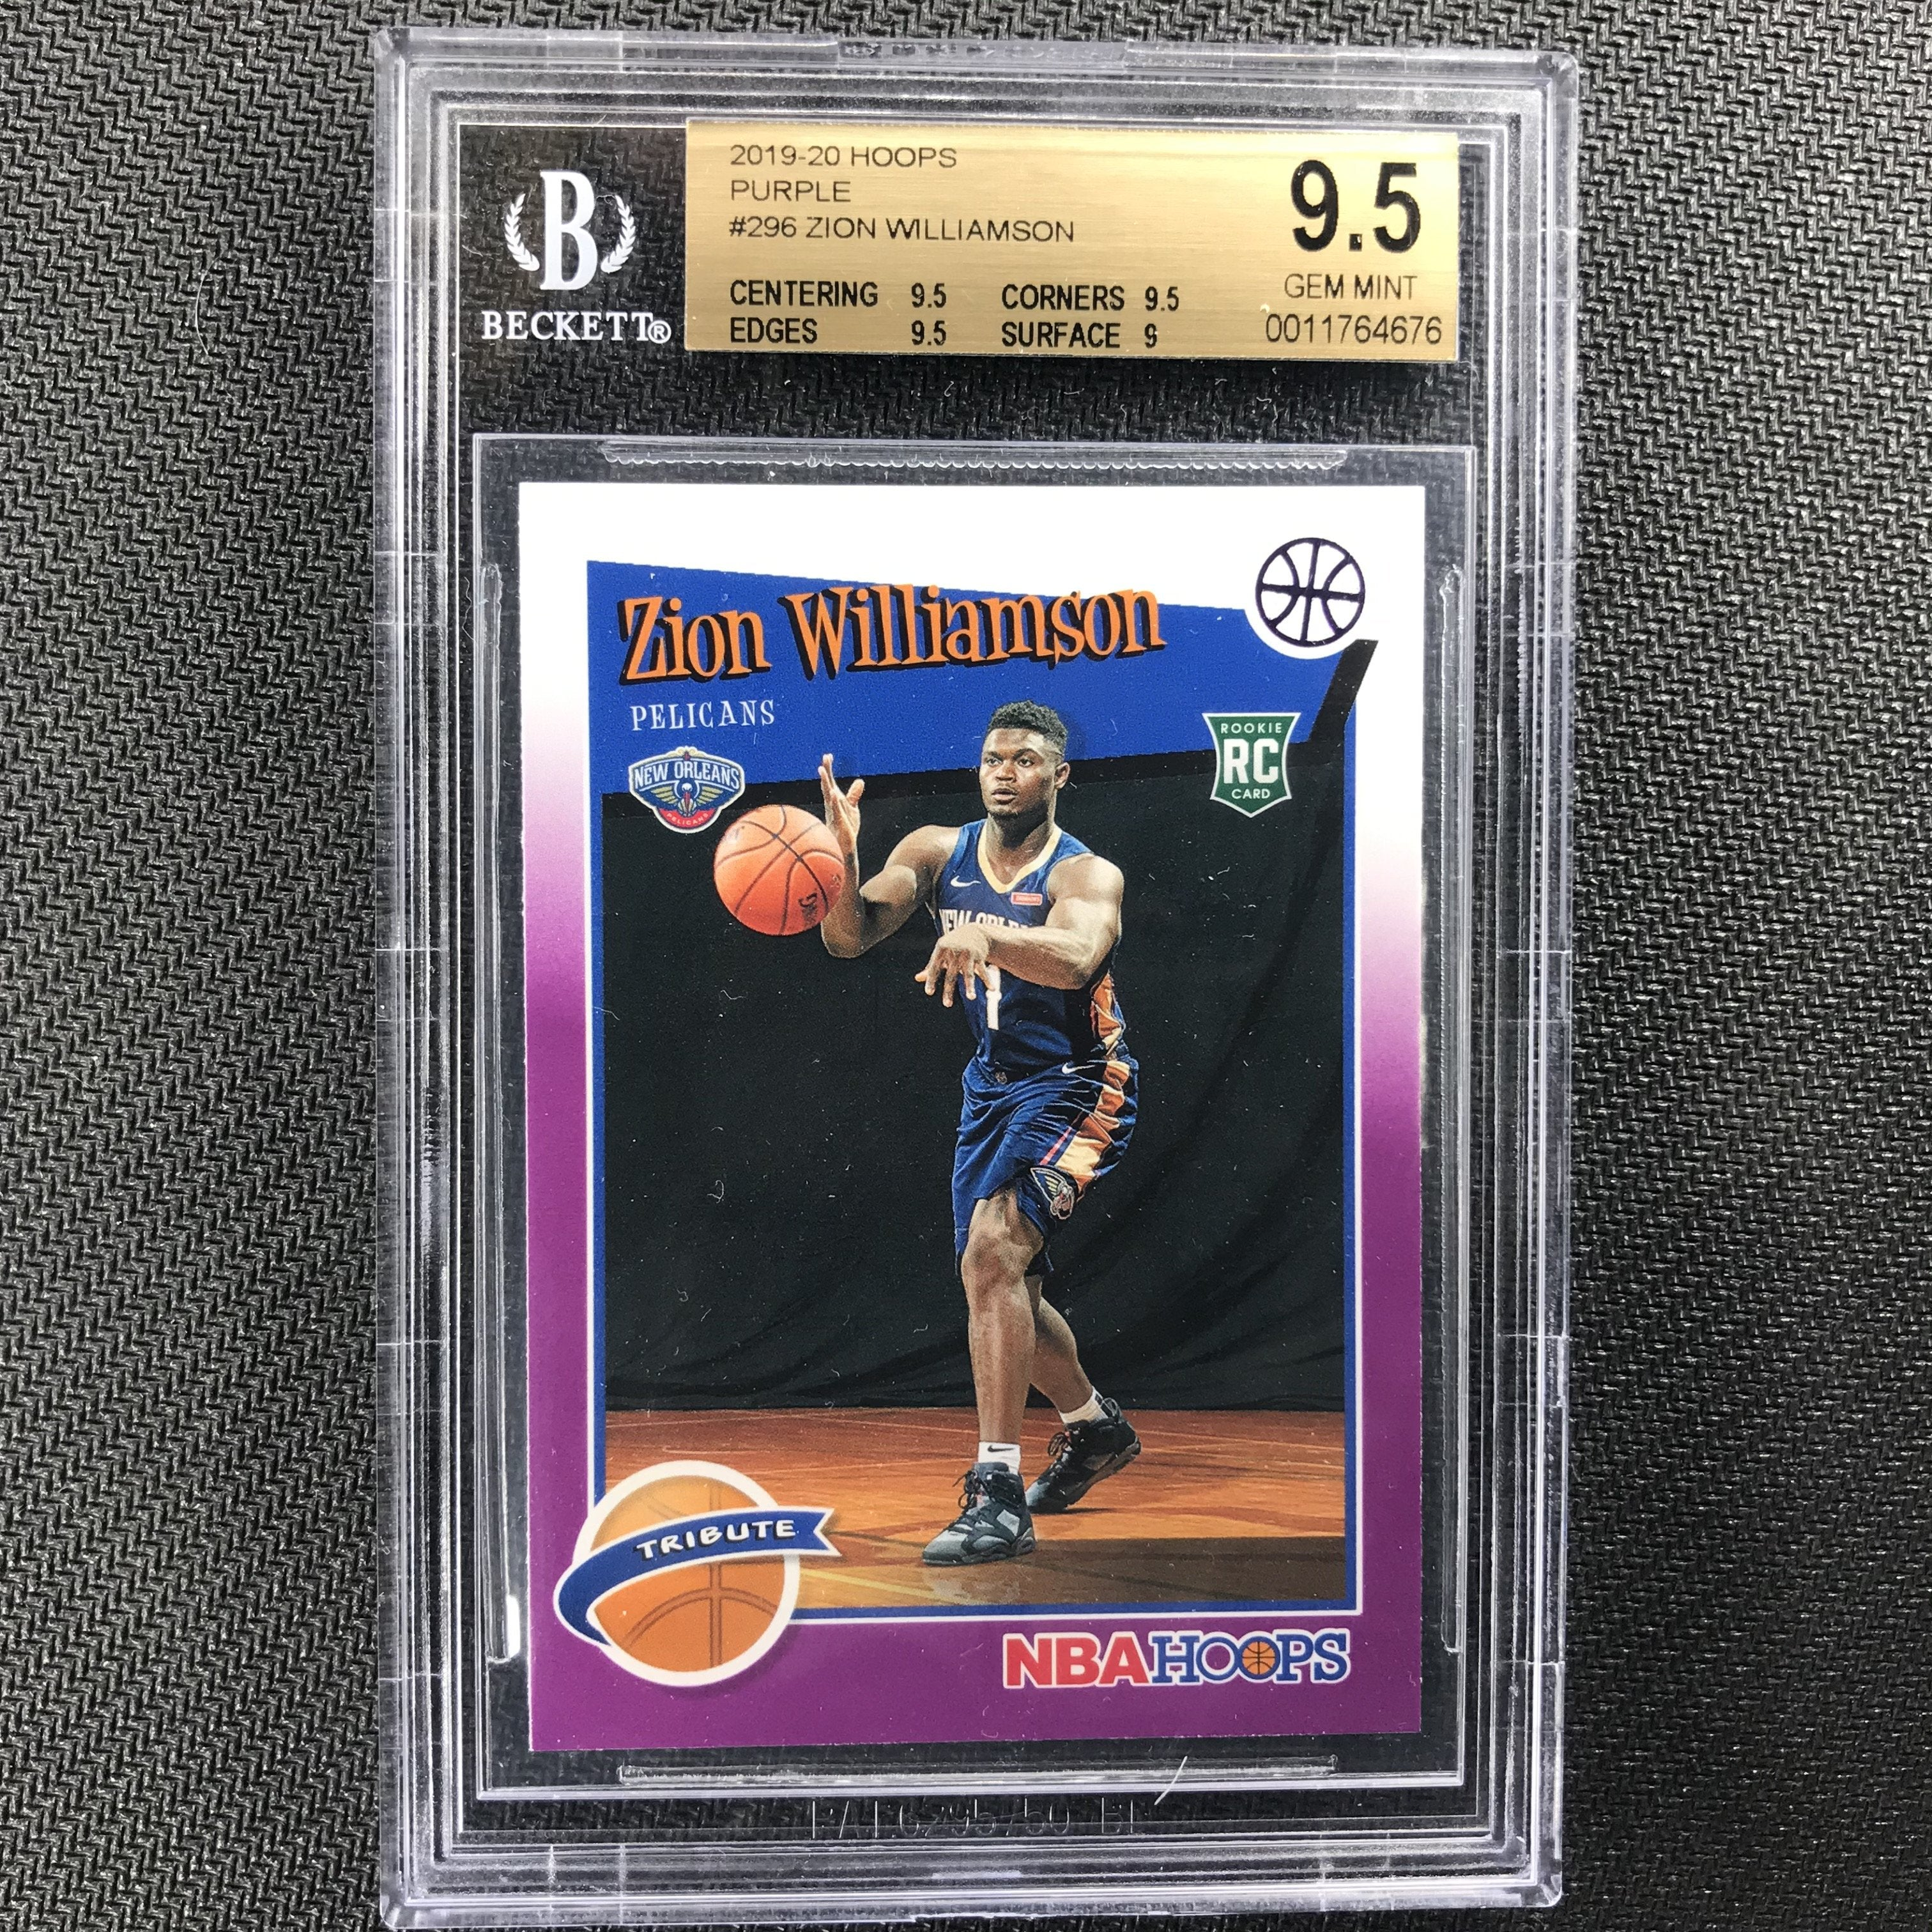 2019-20 Hoops ZION WILLIAMSON Tribute Rookie Purple BGS 9.5 POP 1-Cherry Collectables